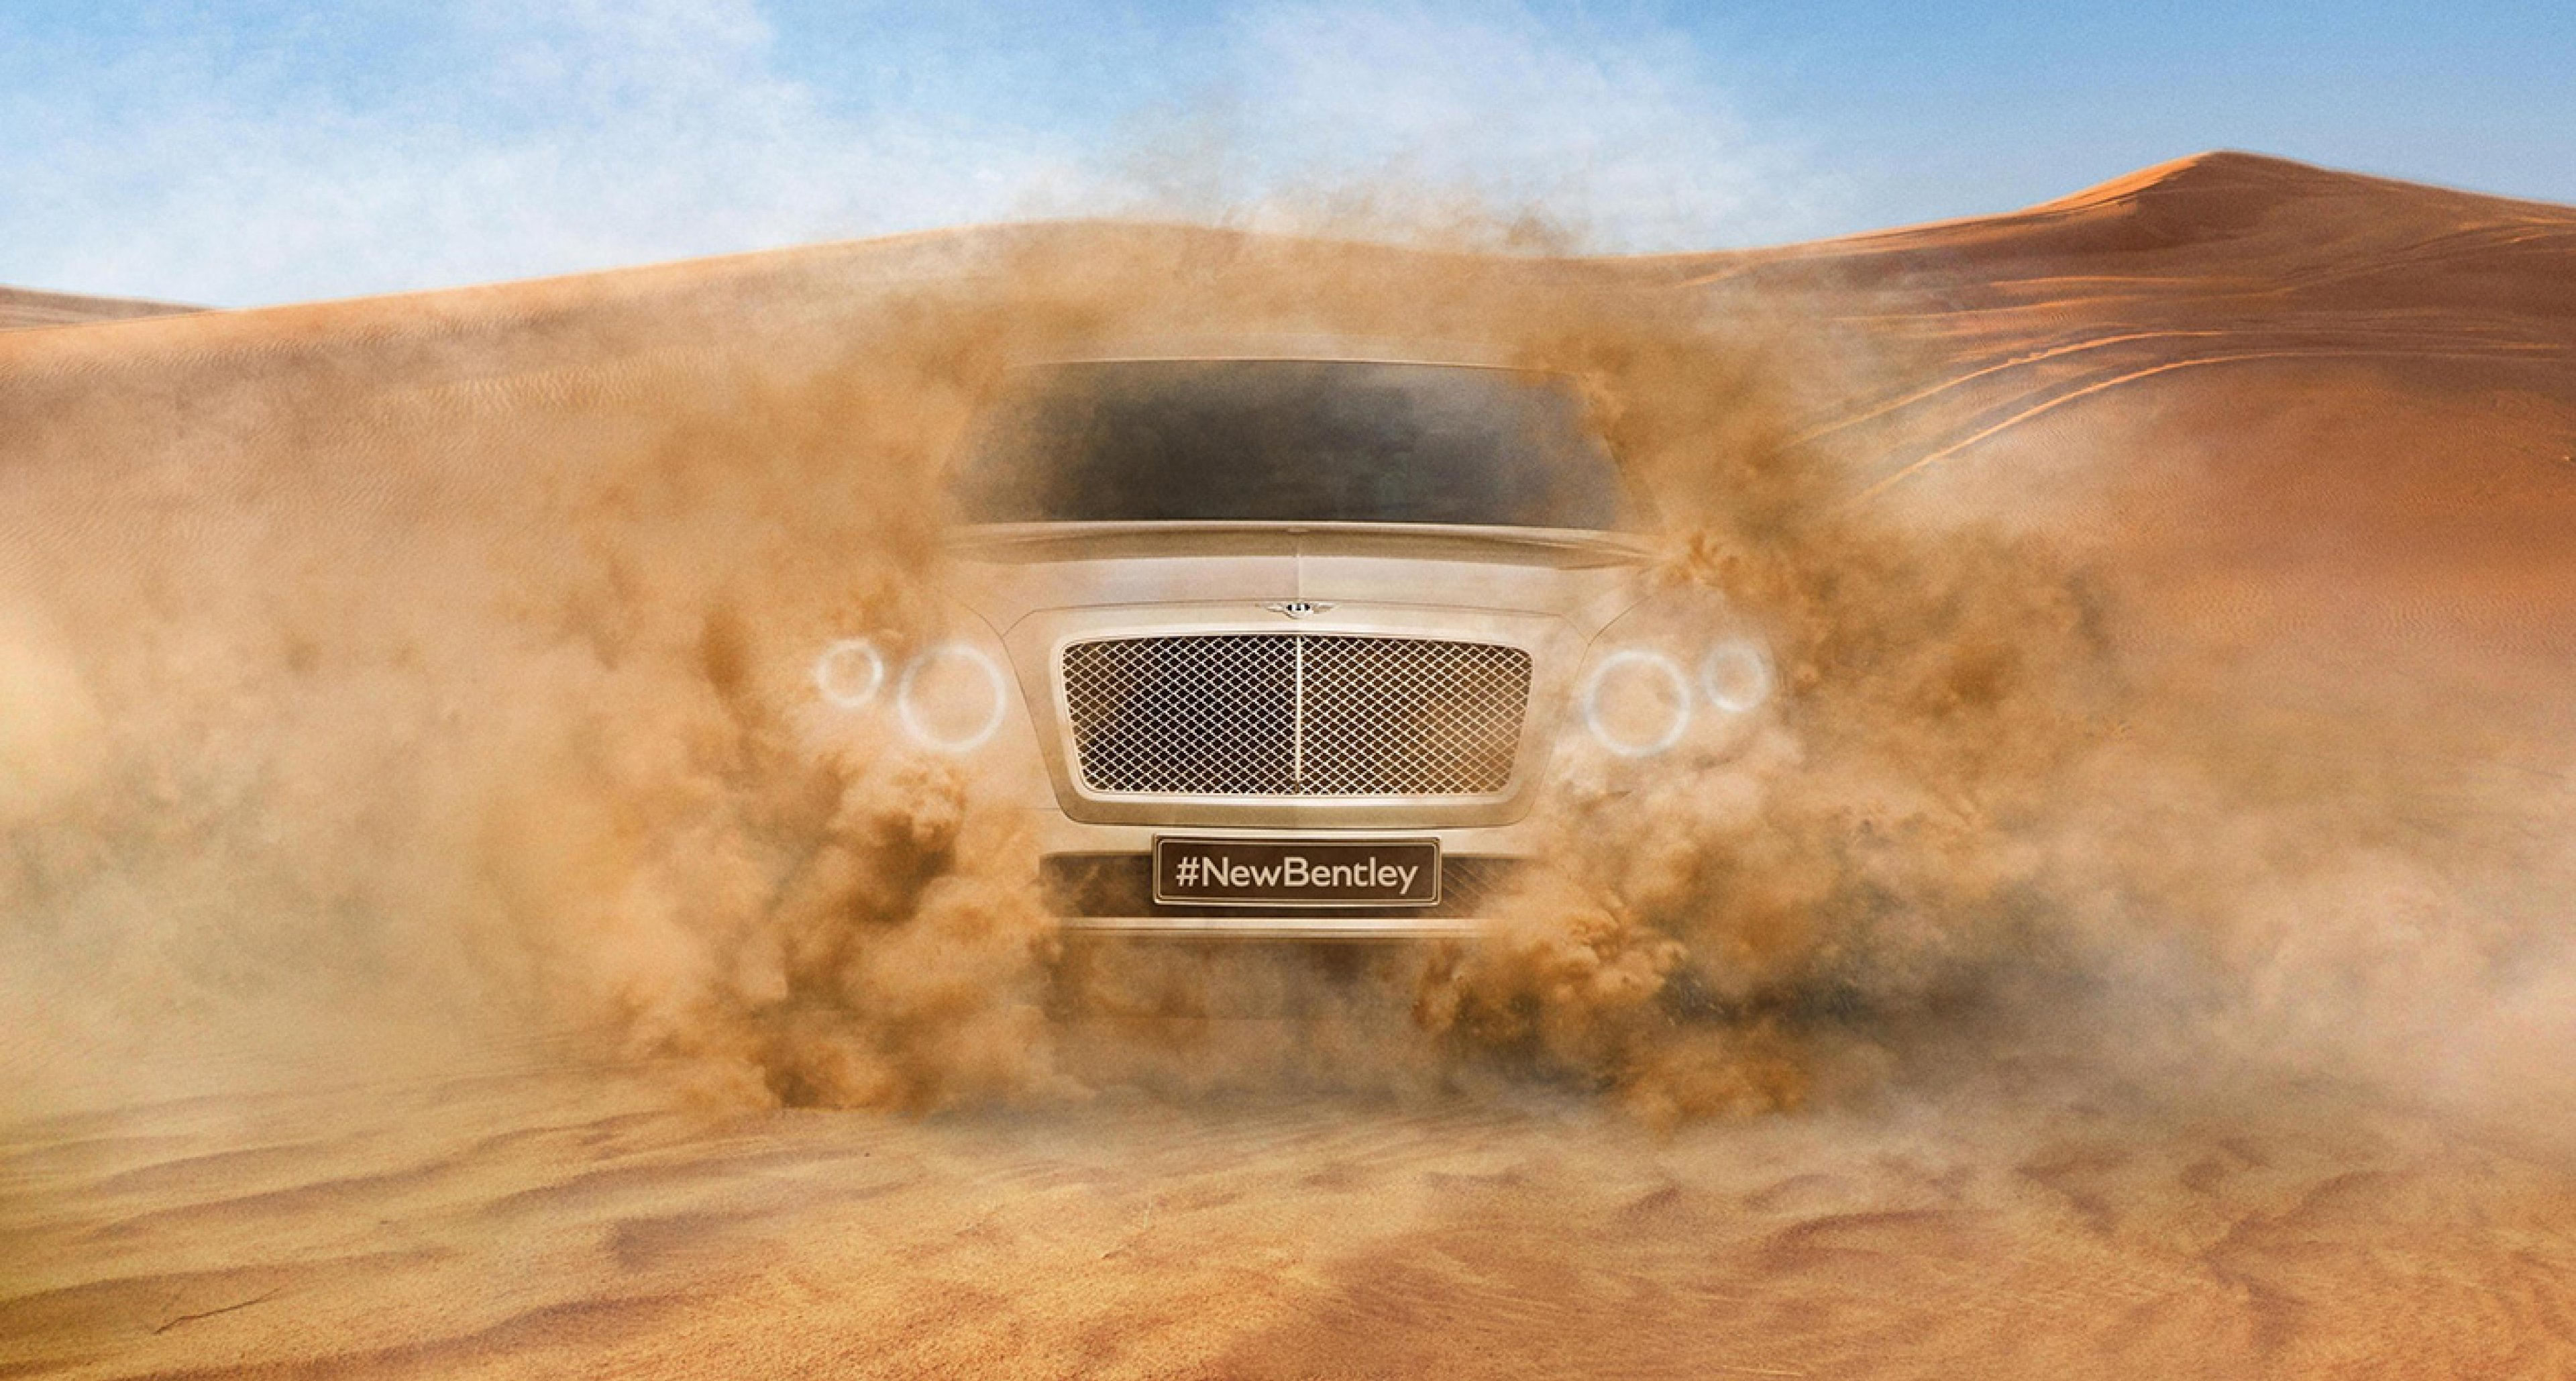 The new Bentley SUV will arrive in 2016